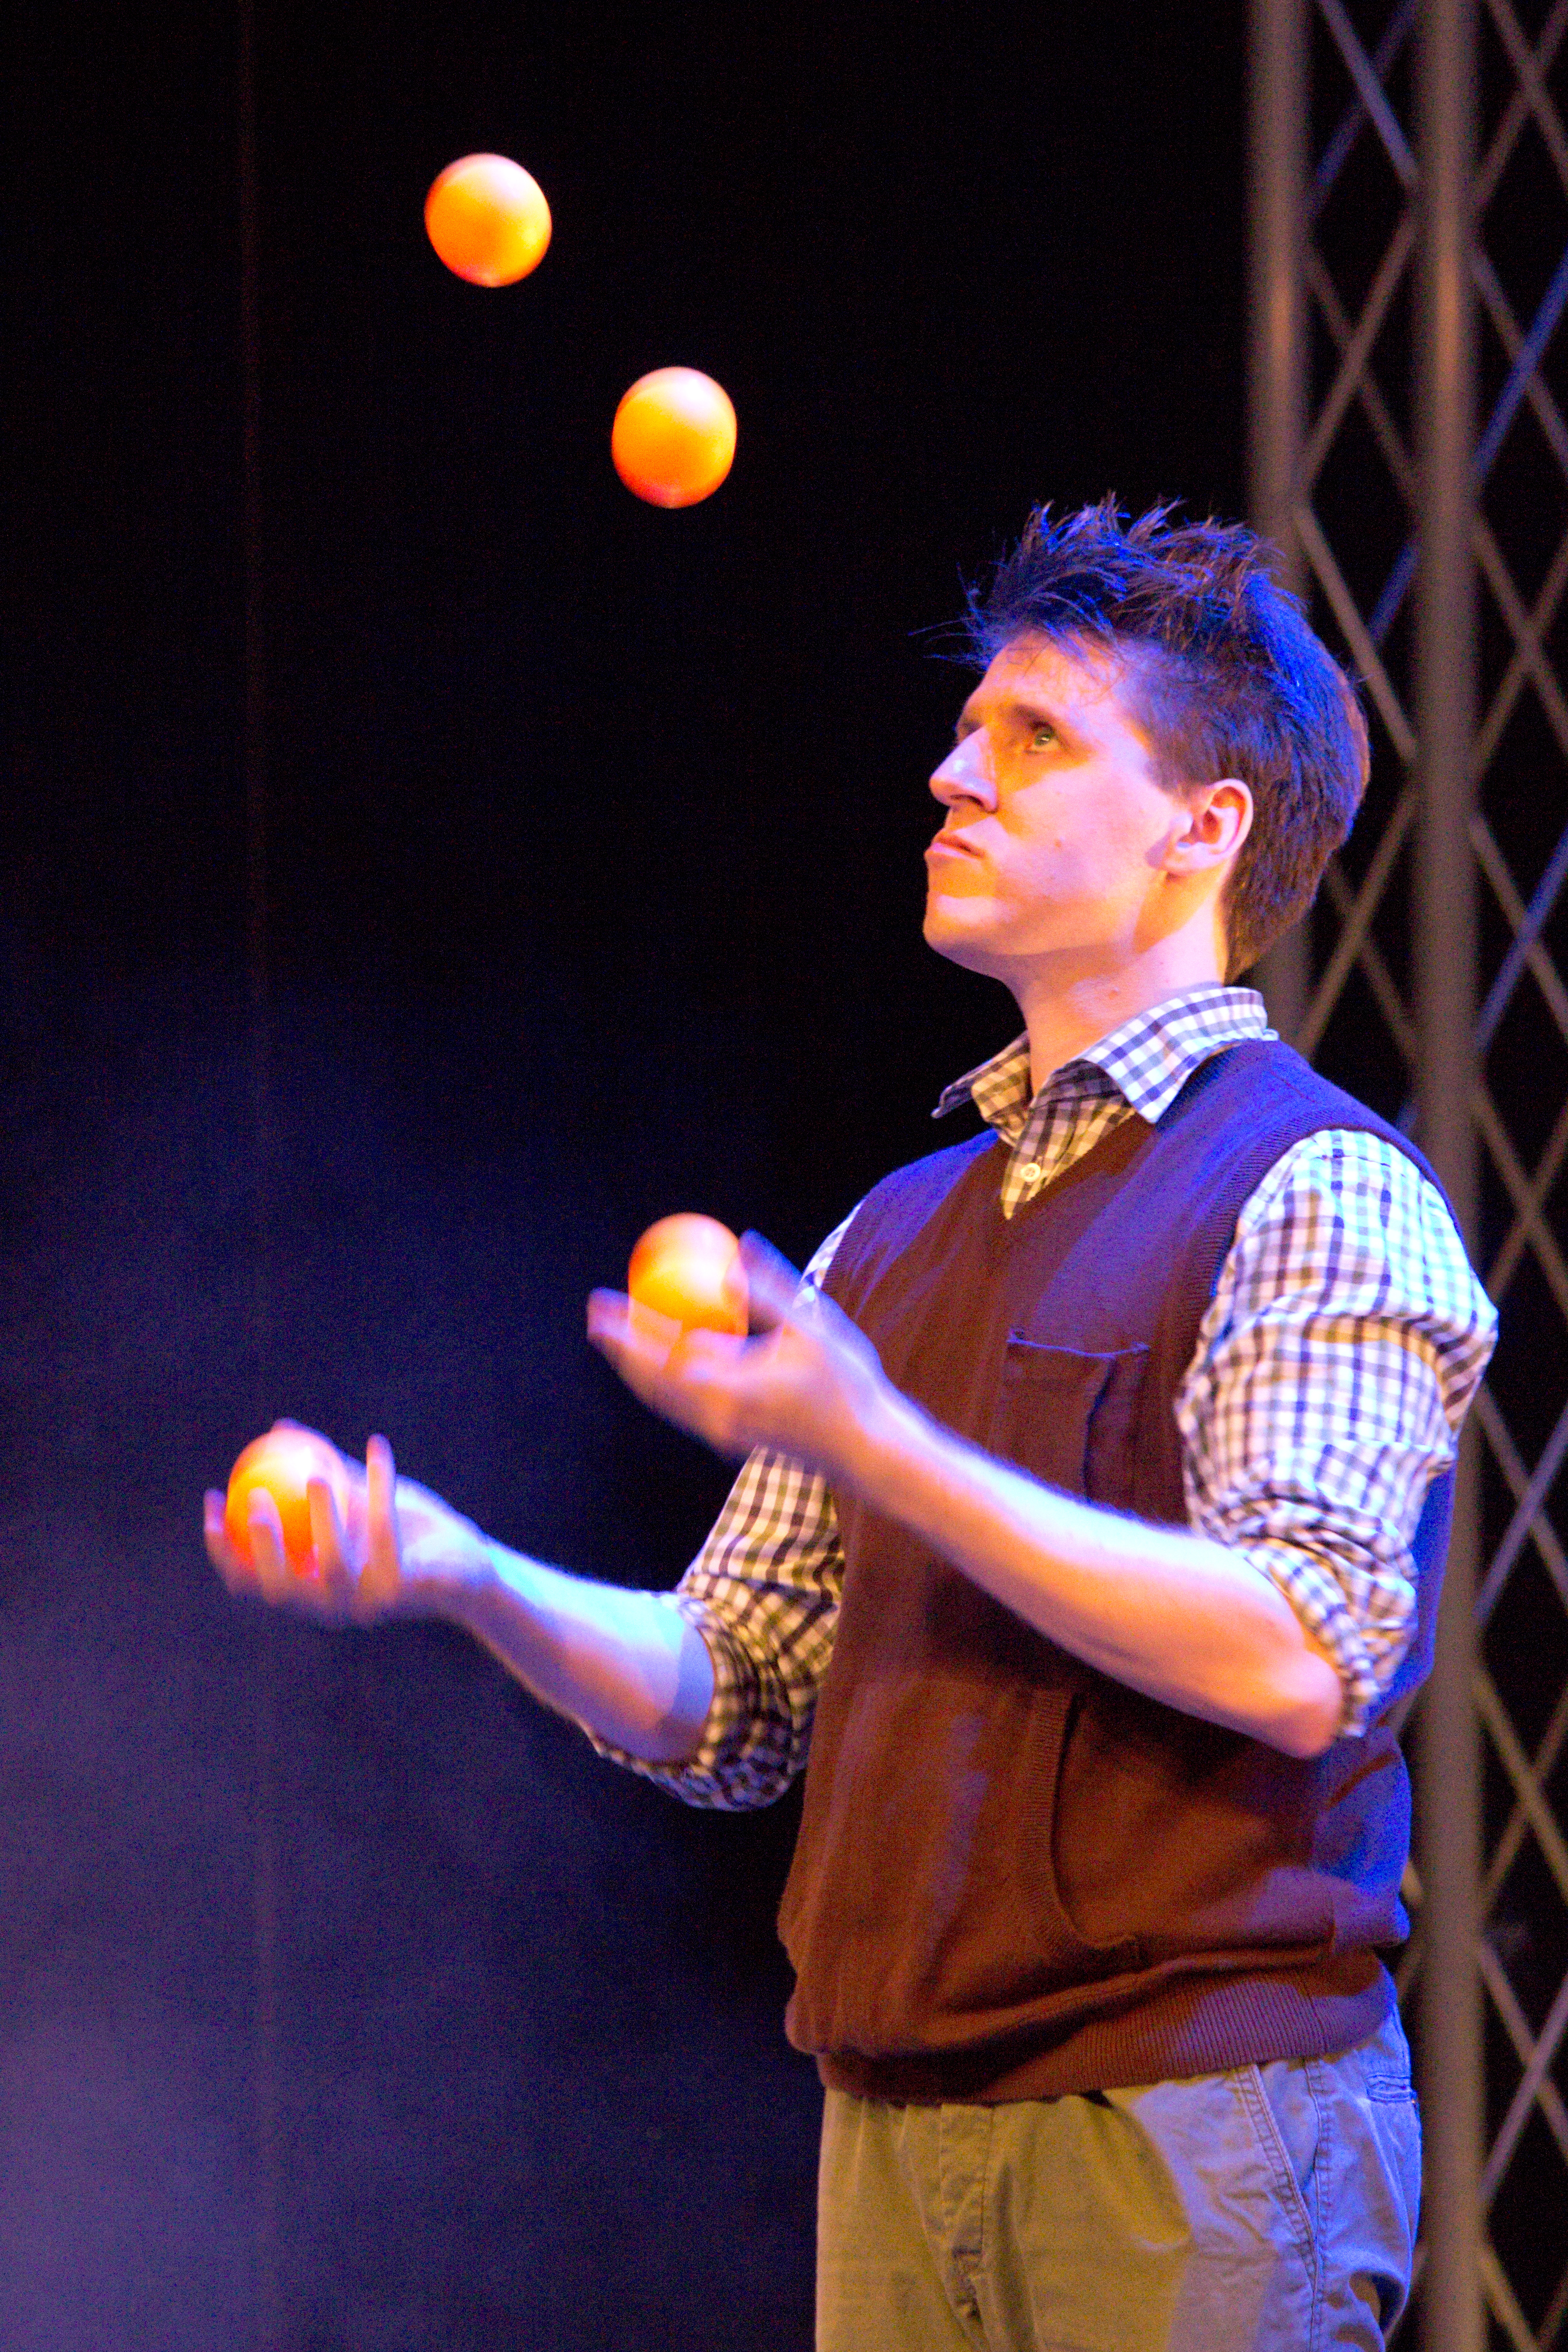 Berlin Juggling Convention 2013 Gala Show: Eugenius Nil.